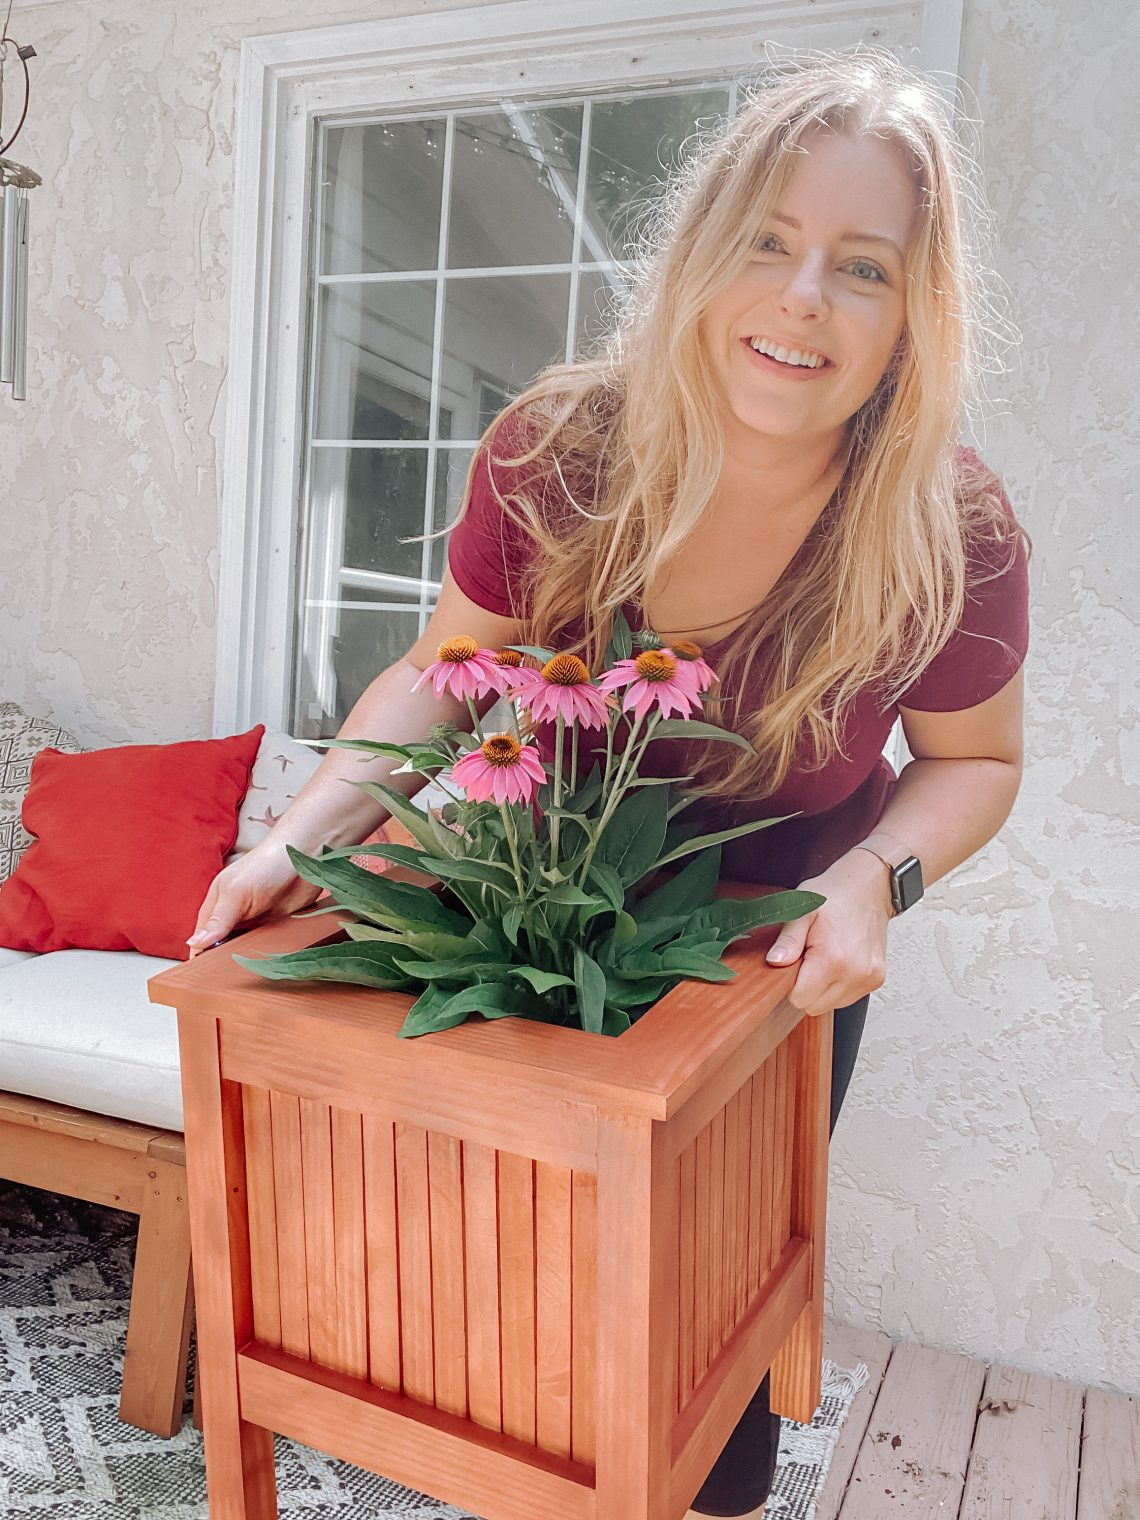 I'm holding the planter. It is square with a brown/red stain. There are pink flowers in it.